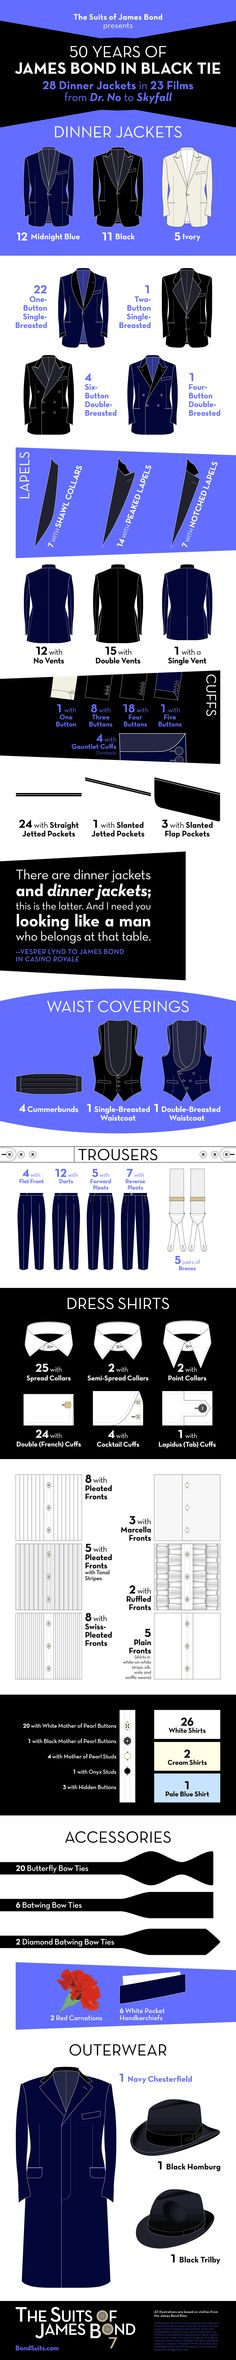 50 years of James Bond's black tie outfits - inforgraphic